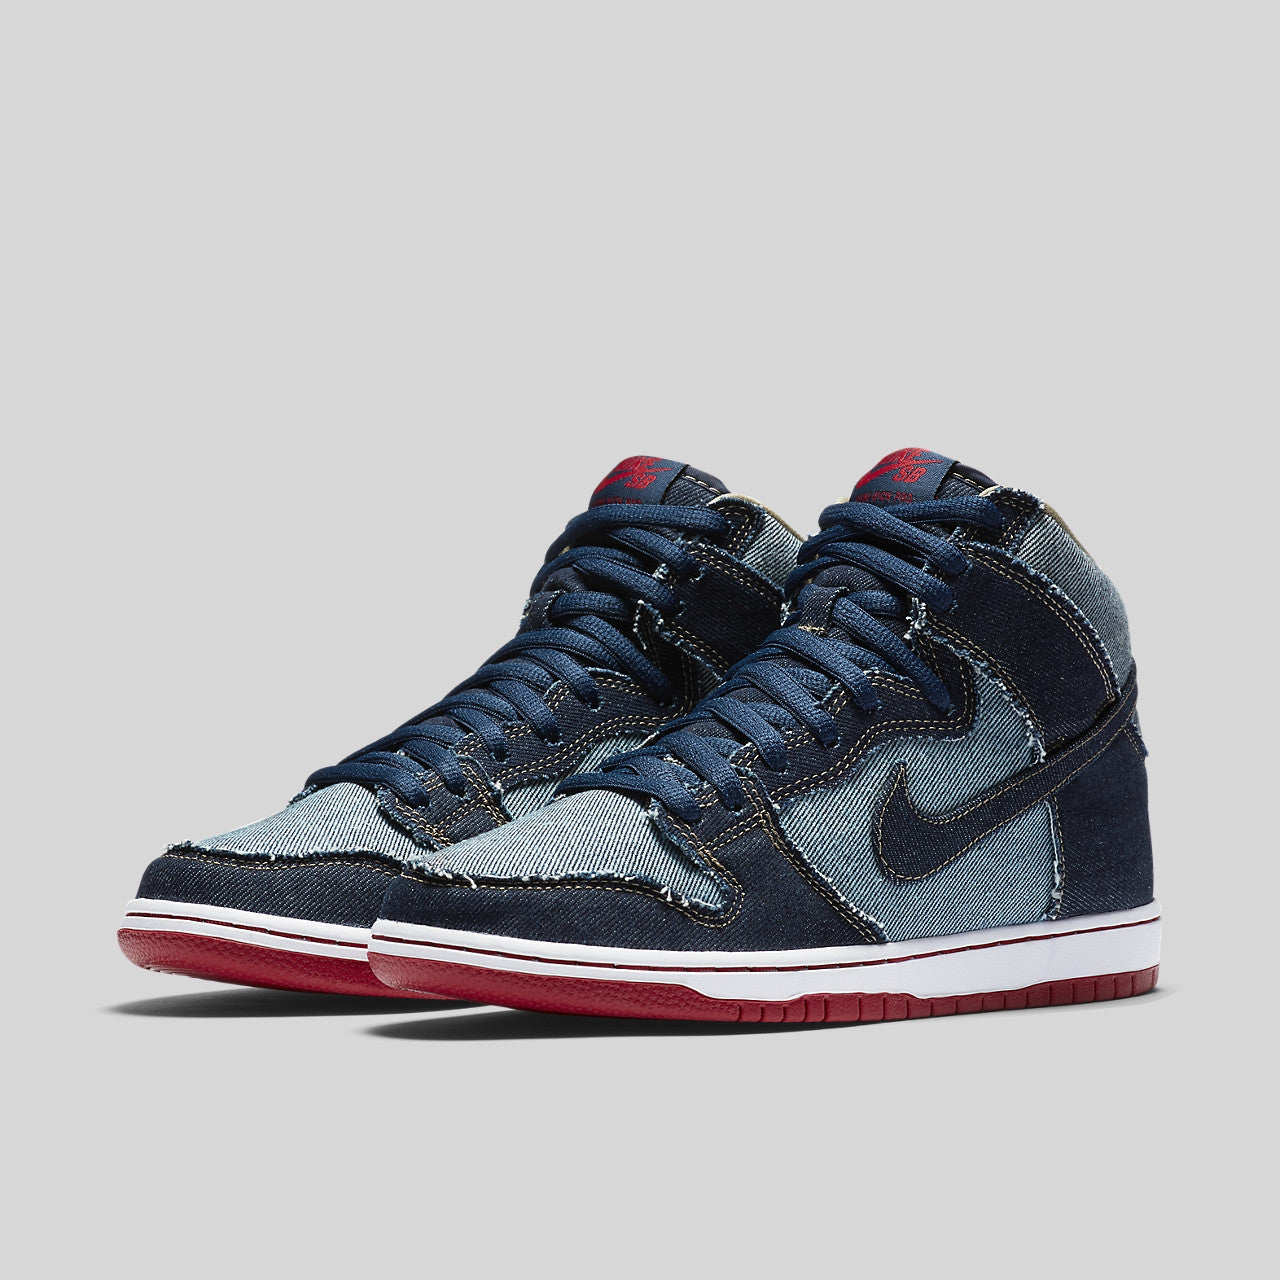 new style f7eb5 759c0 Nike SB Dunk High TRD QS Reese Forbes Blue Denim. Item Number  881758-441